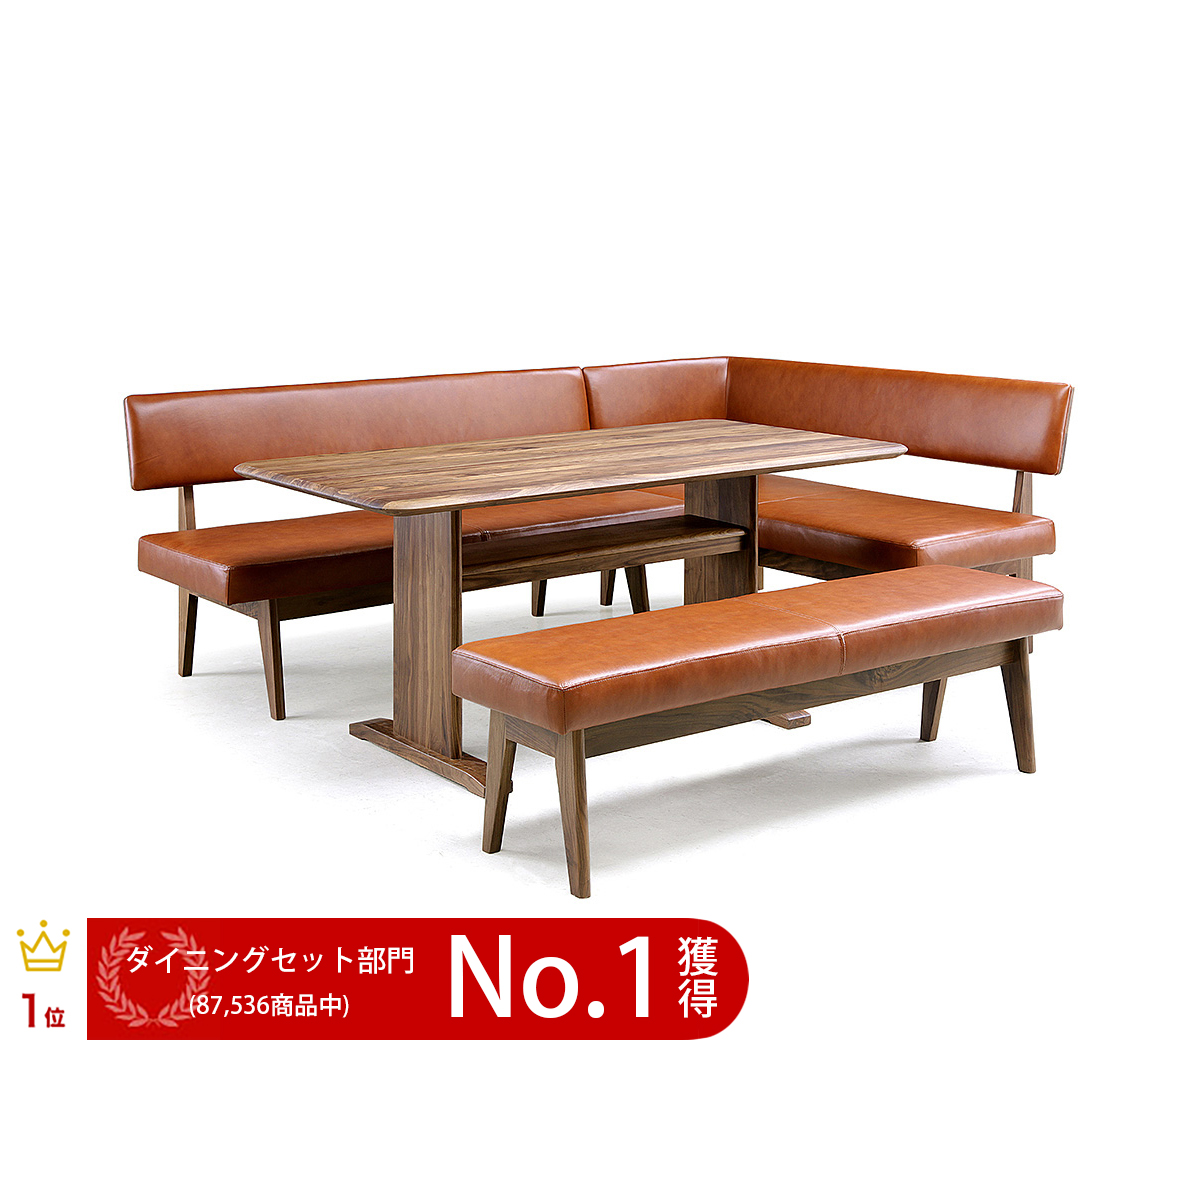 34%OFF [4点セット] GREEN home style YUZU SOFA LD TABLE + LD CHAIR A + LD CHAIR B[R] + LD BENCH (グリーン ユズ リビングダイニング テーブル チェアA チェアB[右] ベンチ) 岩倉 榮利 (ウォールナット材)【同梱不可】